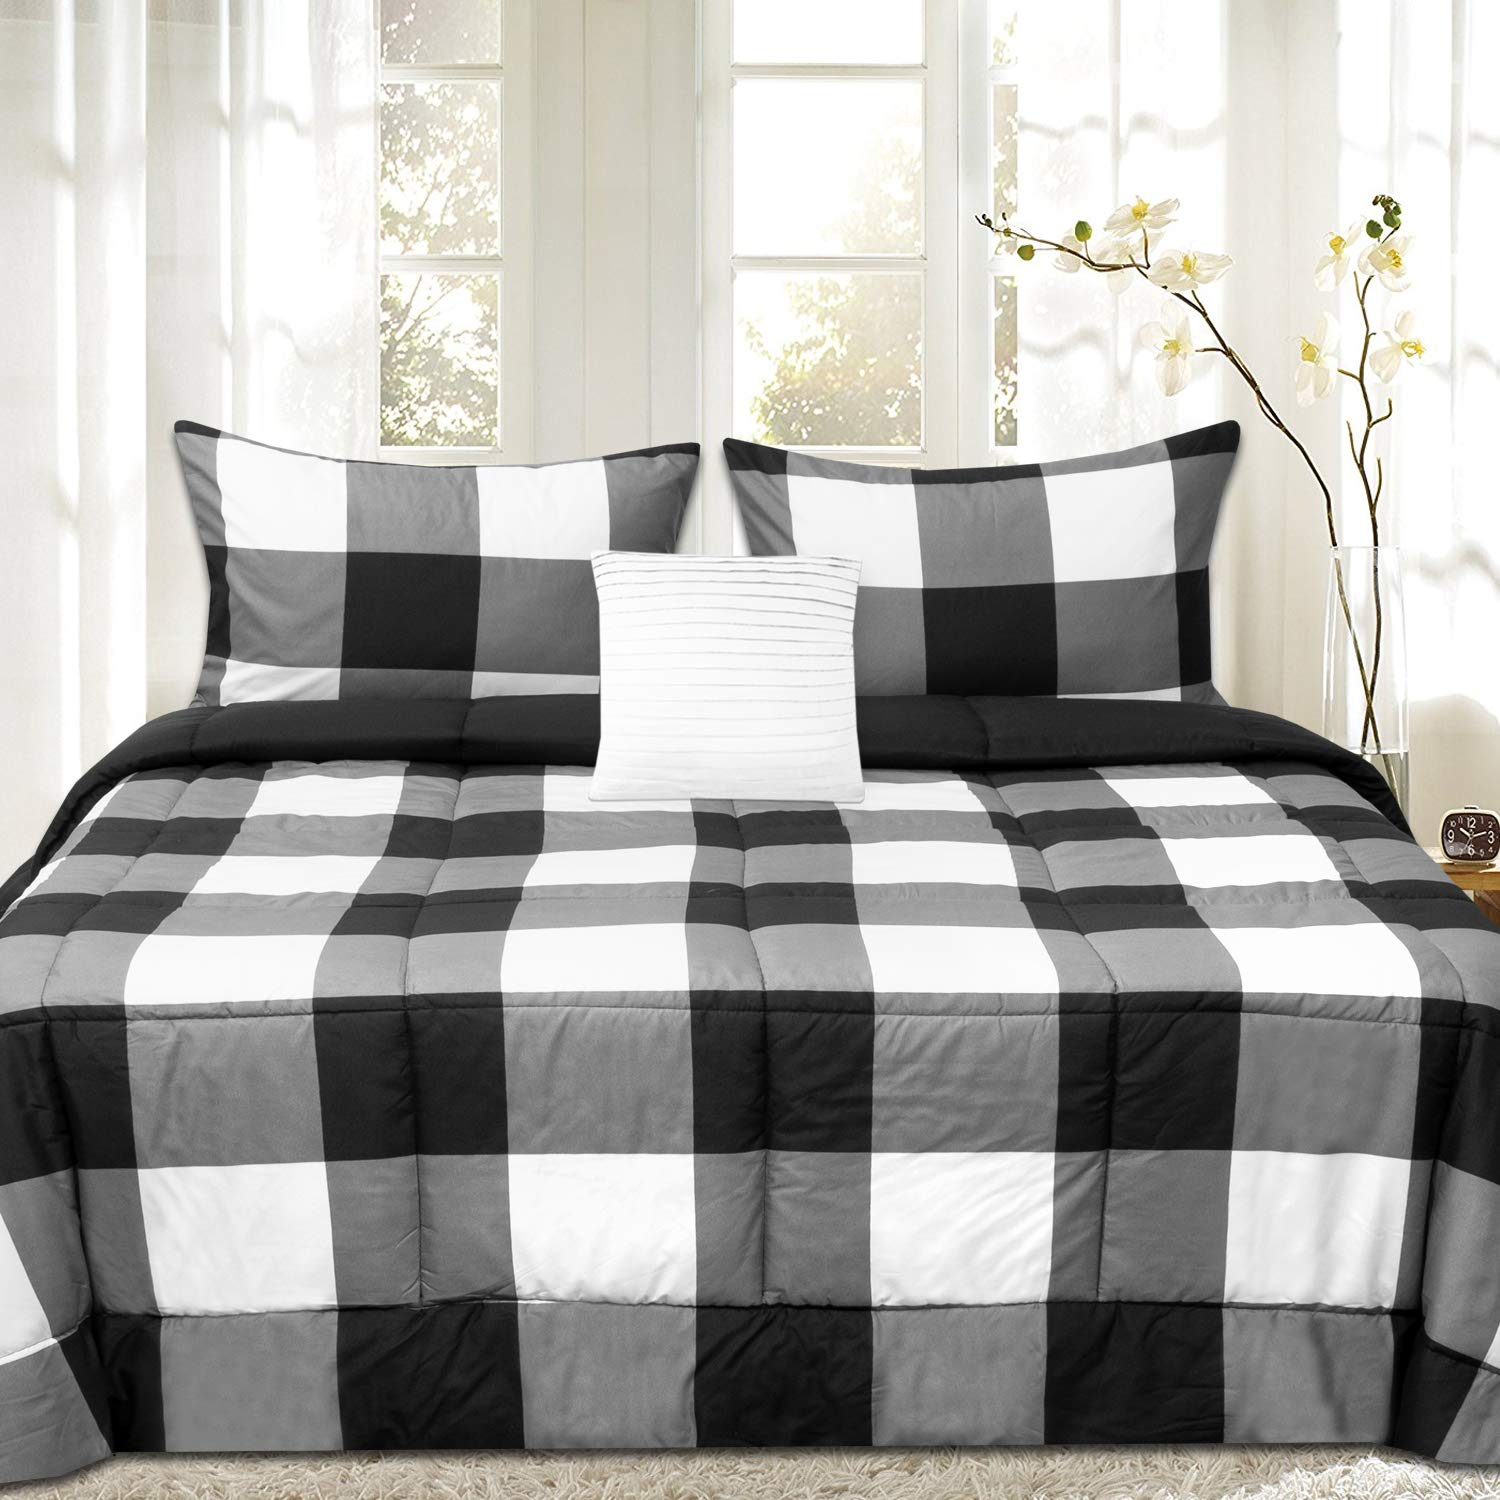 Sweet Home Collection Comforter Set 4 Piece Buffalo Check Plaid Design Soft and Luxurious All Season Warmth Down Alternative Reversible to Solid Color with 2 Shams & Throw Pillow, King, Black/White